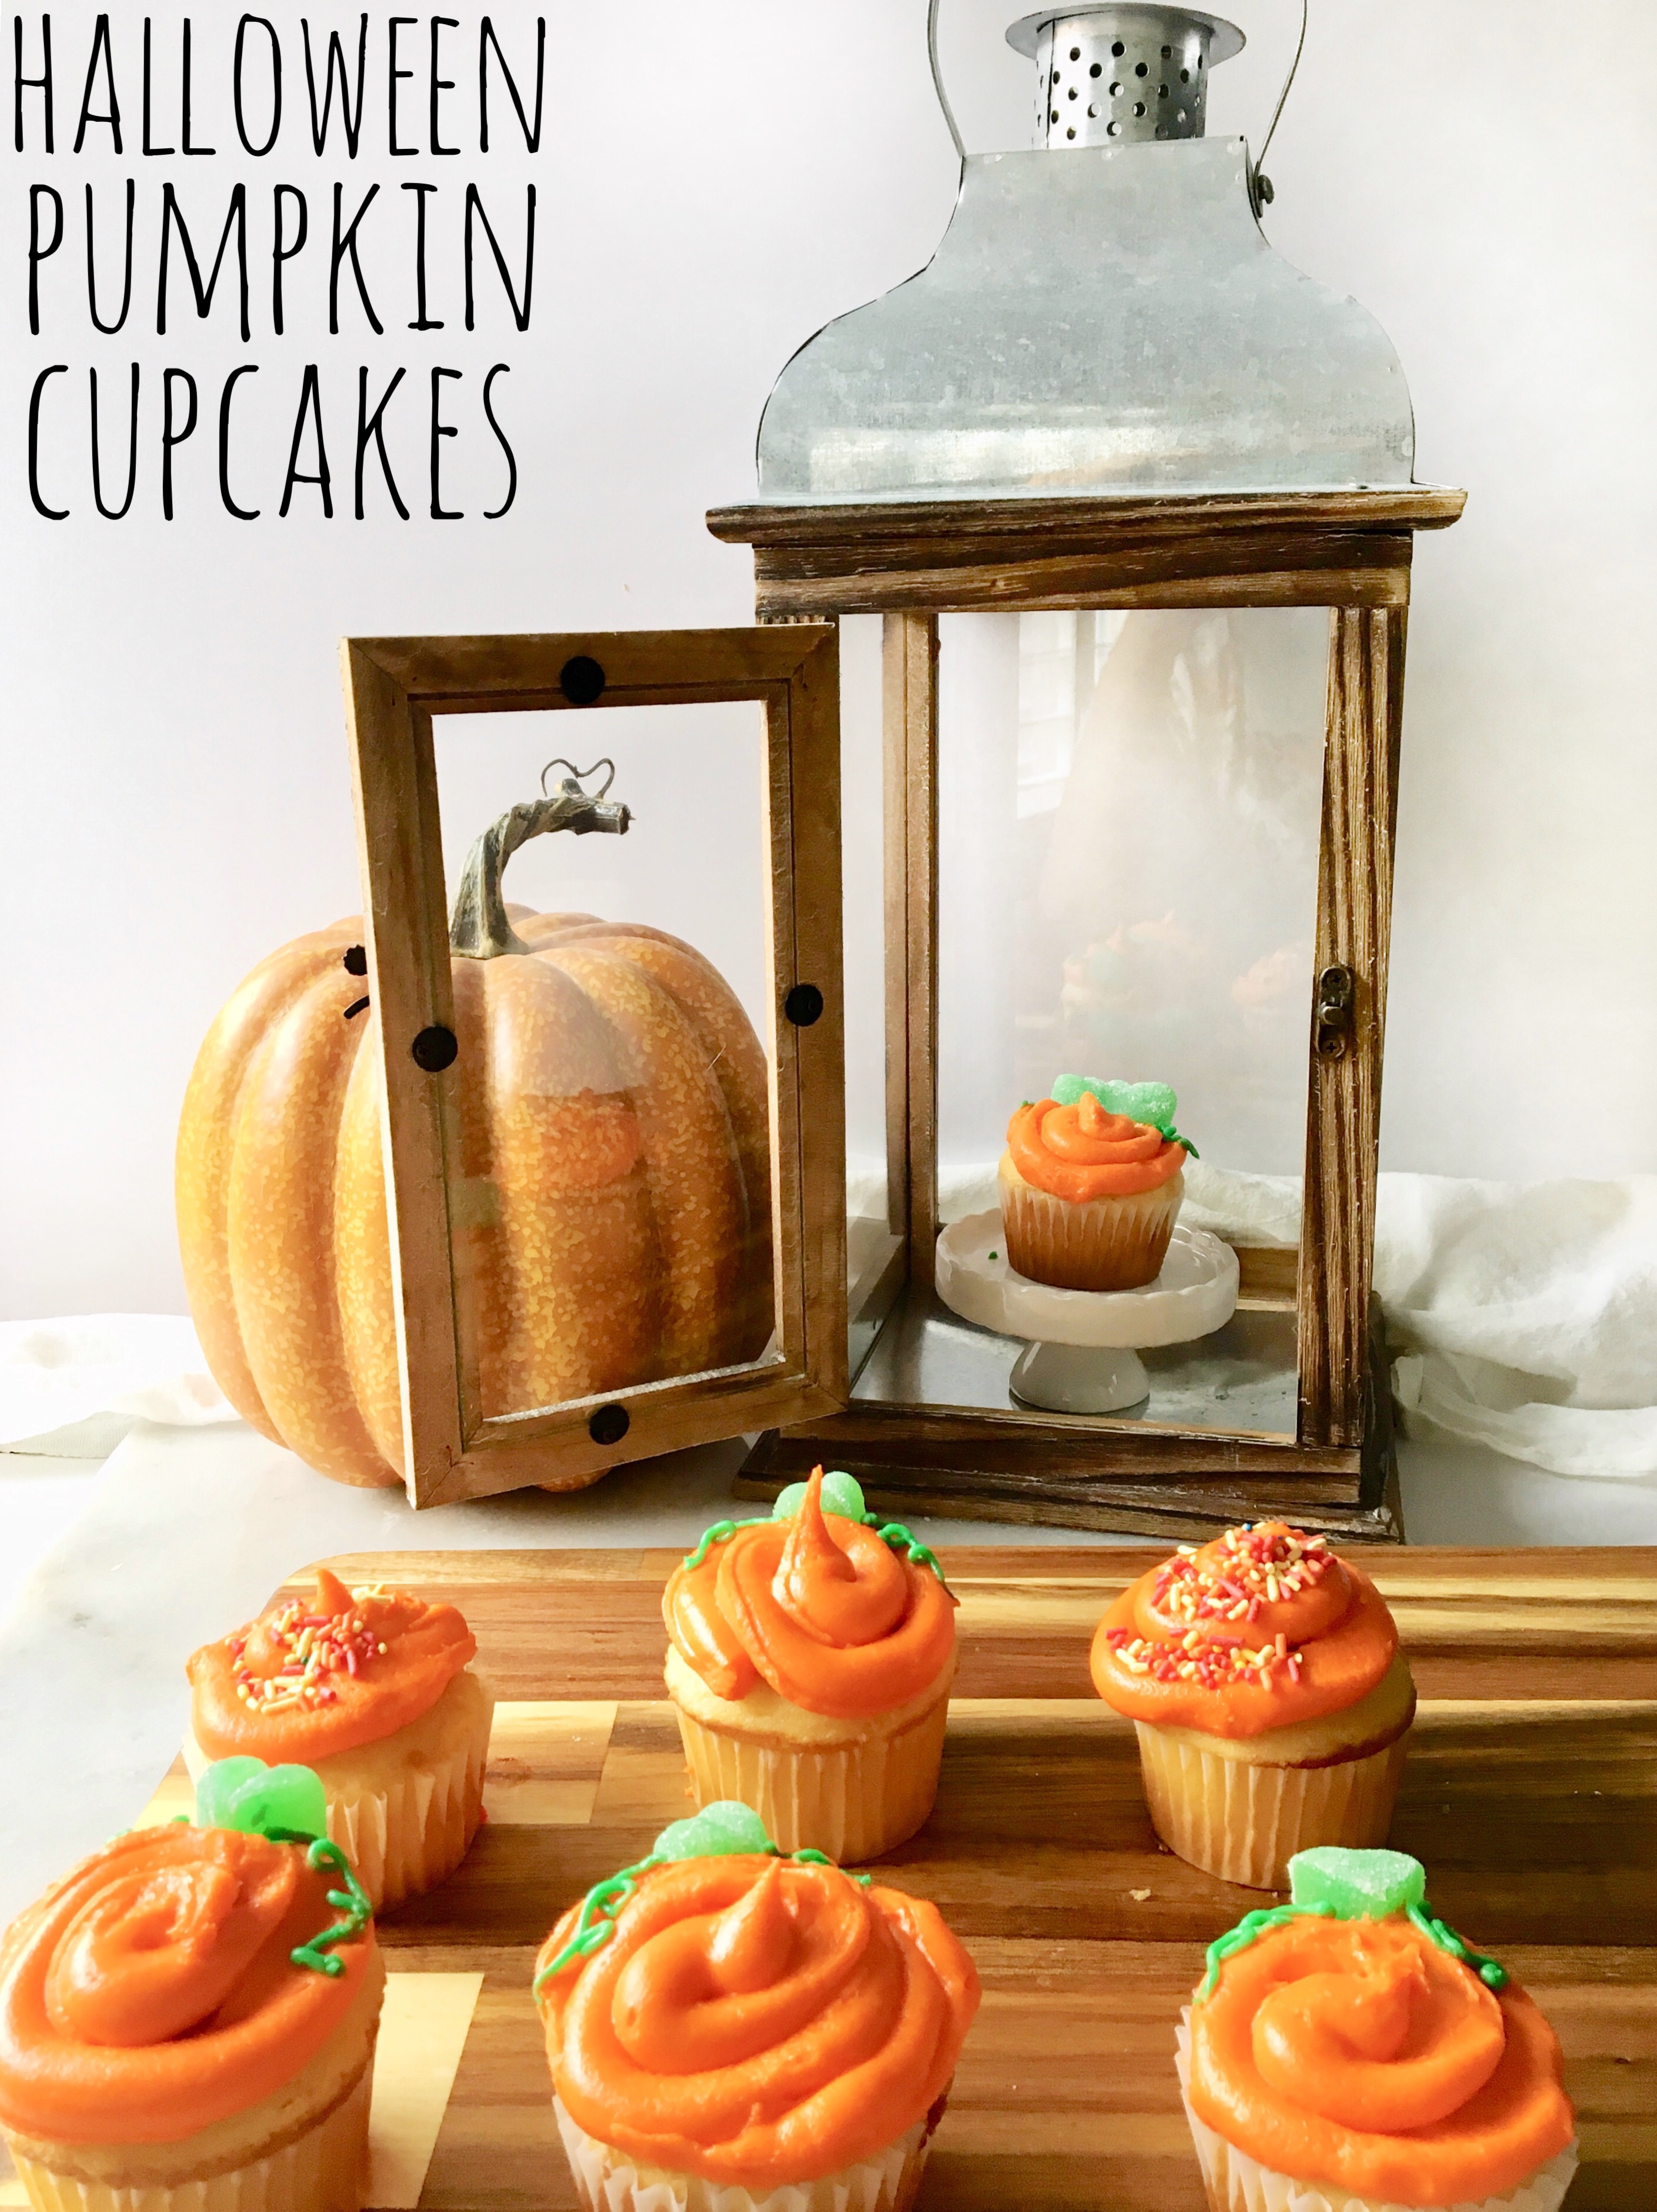 vanilla cupcakes frosting with orange buttercream to look like pumpkins